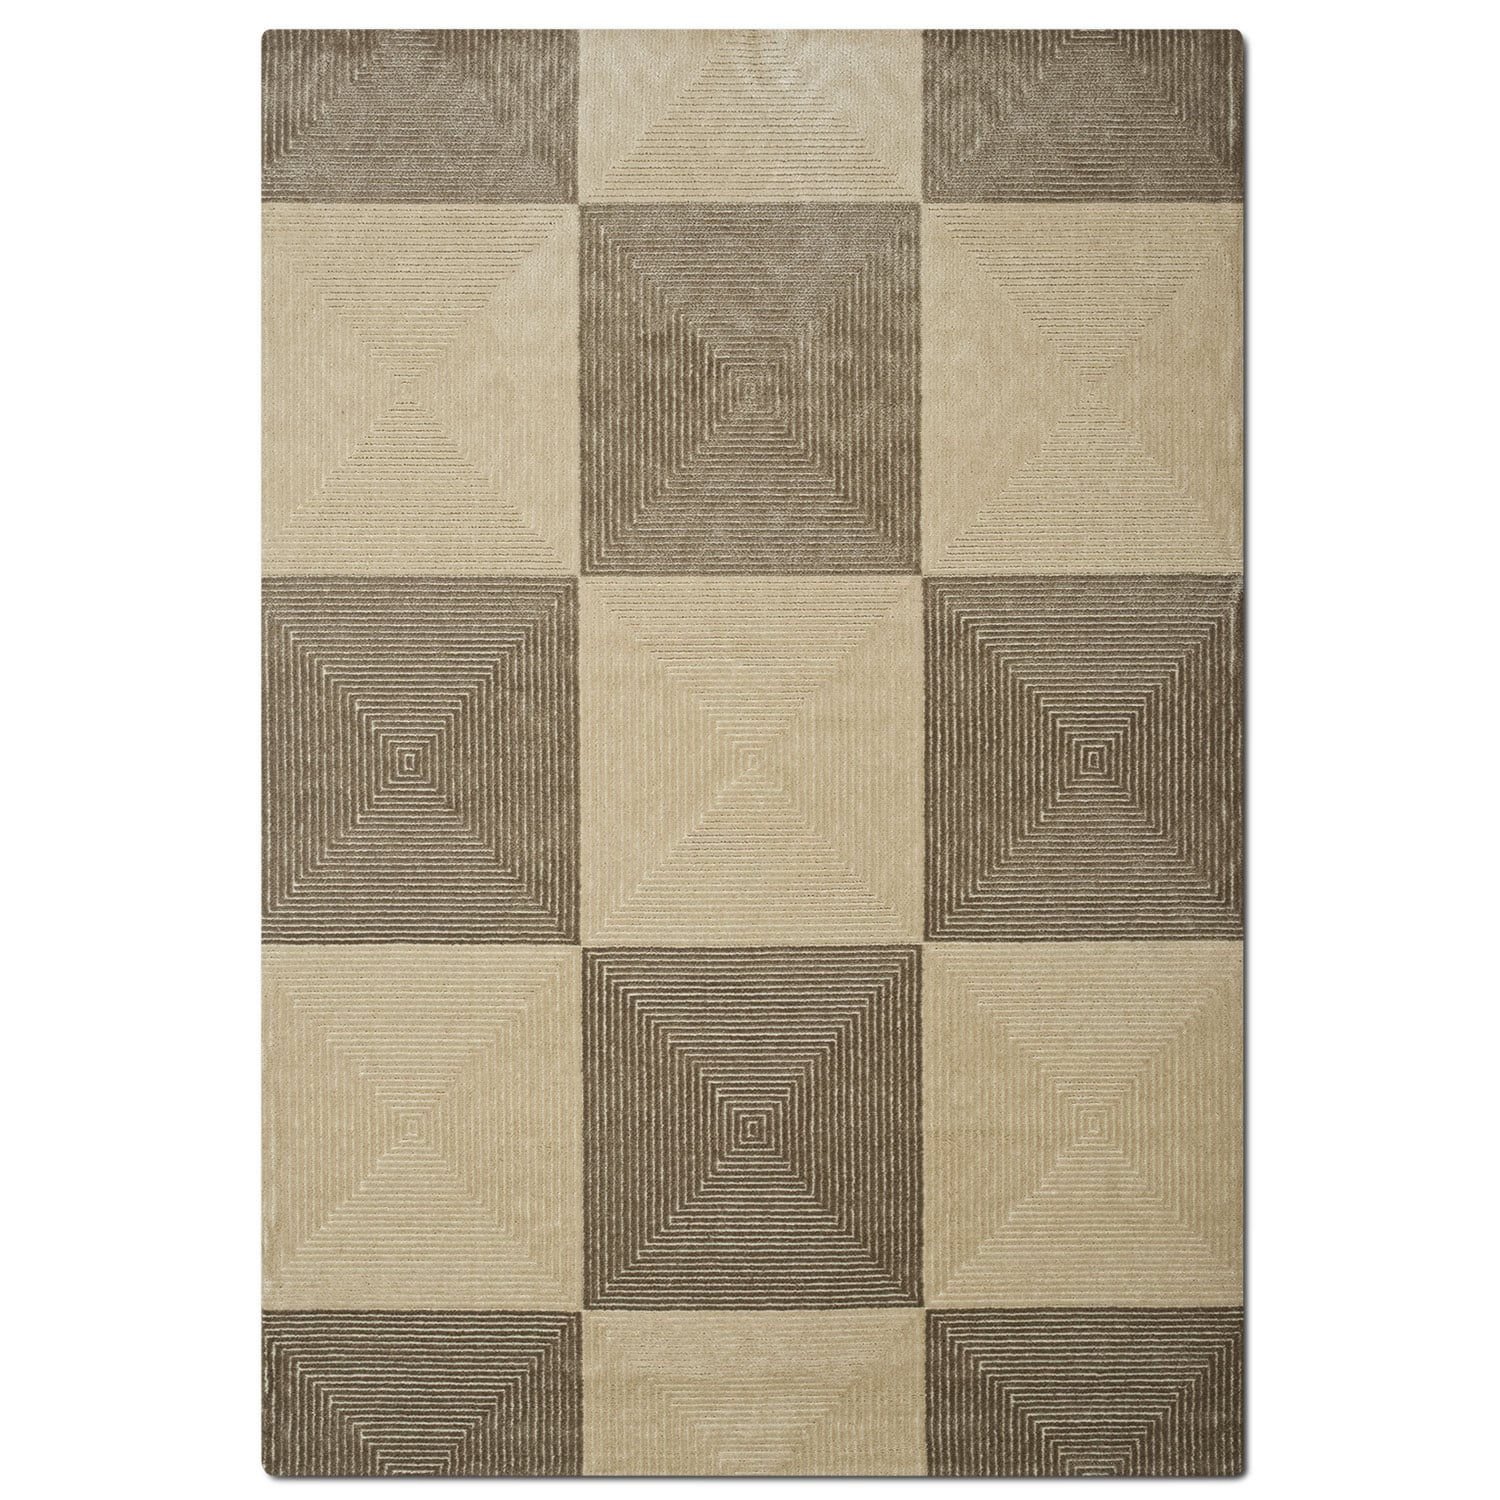 Rugs - Metro 8' x 10' Area Rug - Gray and Charcoal